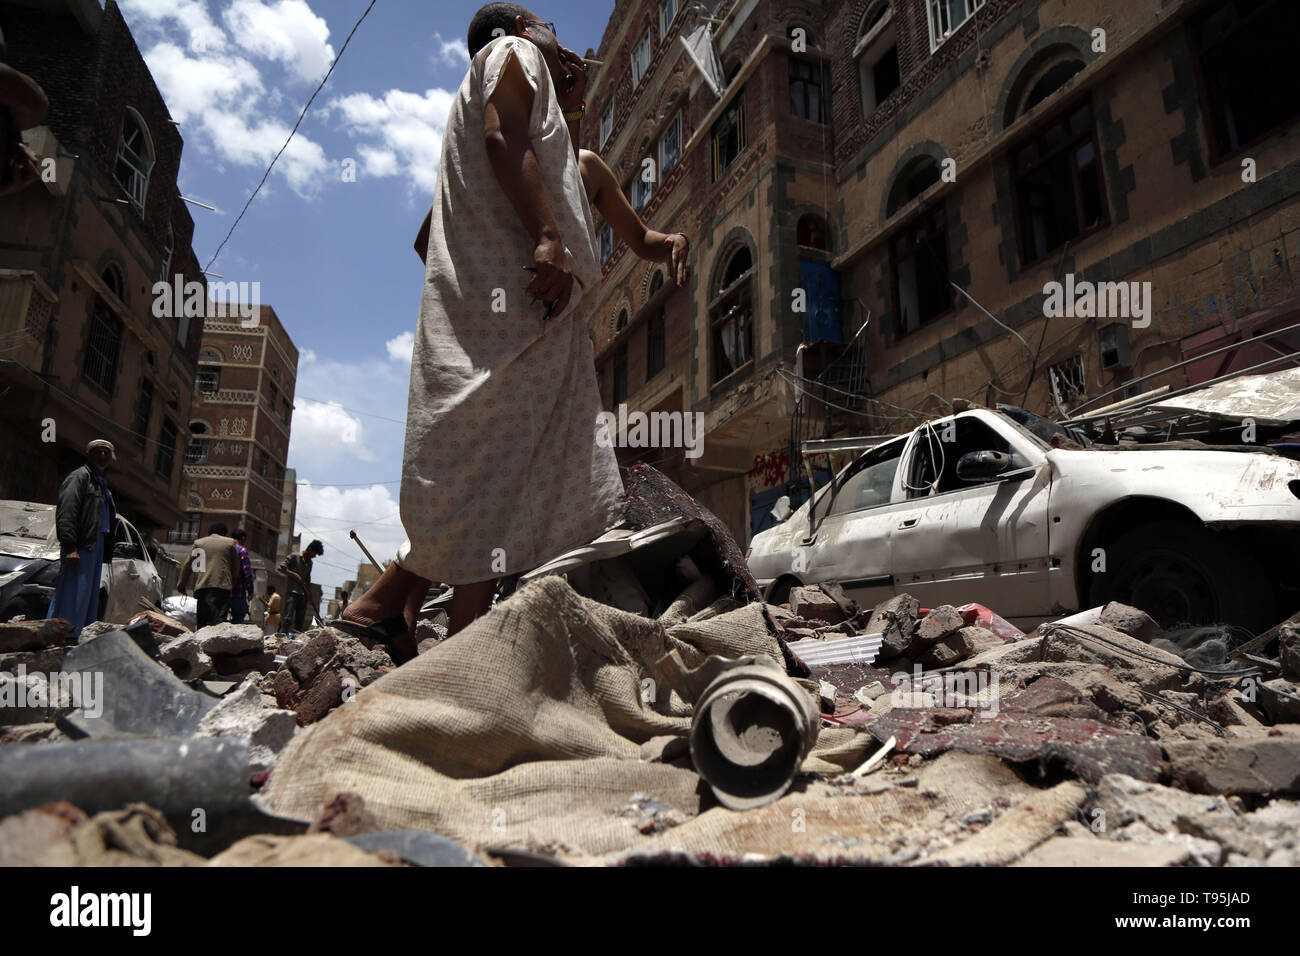 Sanaa, Yemen. 16th May 2019. People inspect damaged houses after an airstrike hit by the Saudi Arabia-led coalition in Sanaa, capital of Yemen, May 16, 2019. The Saudi Arabia-led coalition launched airstrikes on Houthi rebels' targets in the Yemeni capital Sanaa on Thursday morning, causing civilian casualties and damages, authorities and local residents said. Credit: Xinhua/Alamy Live News - Stock Image